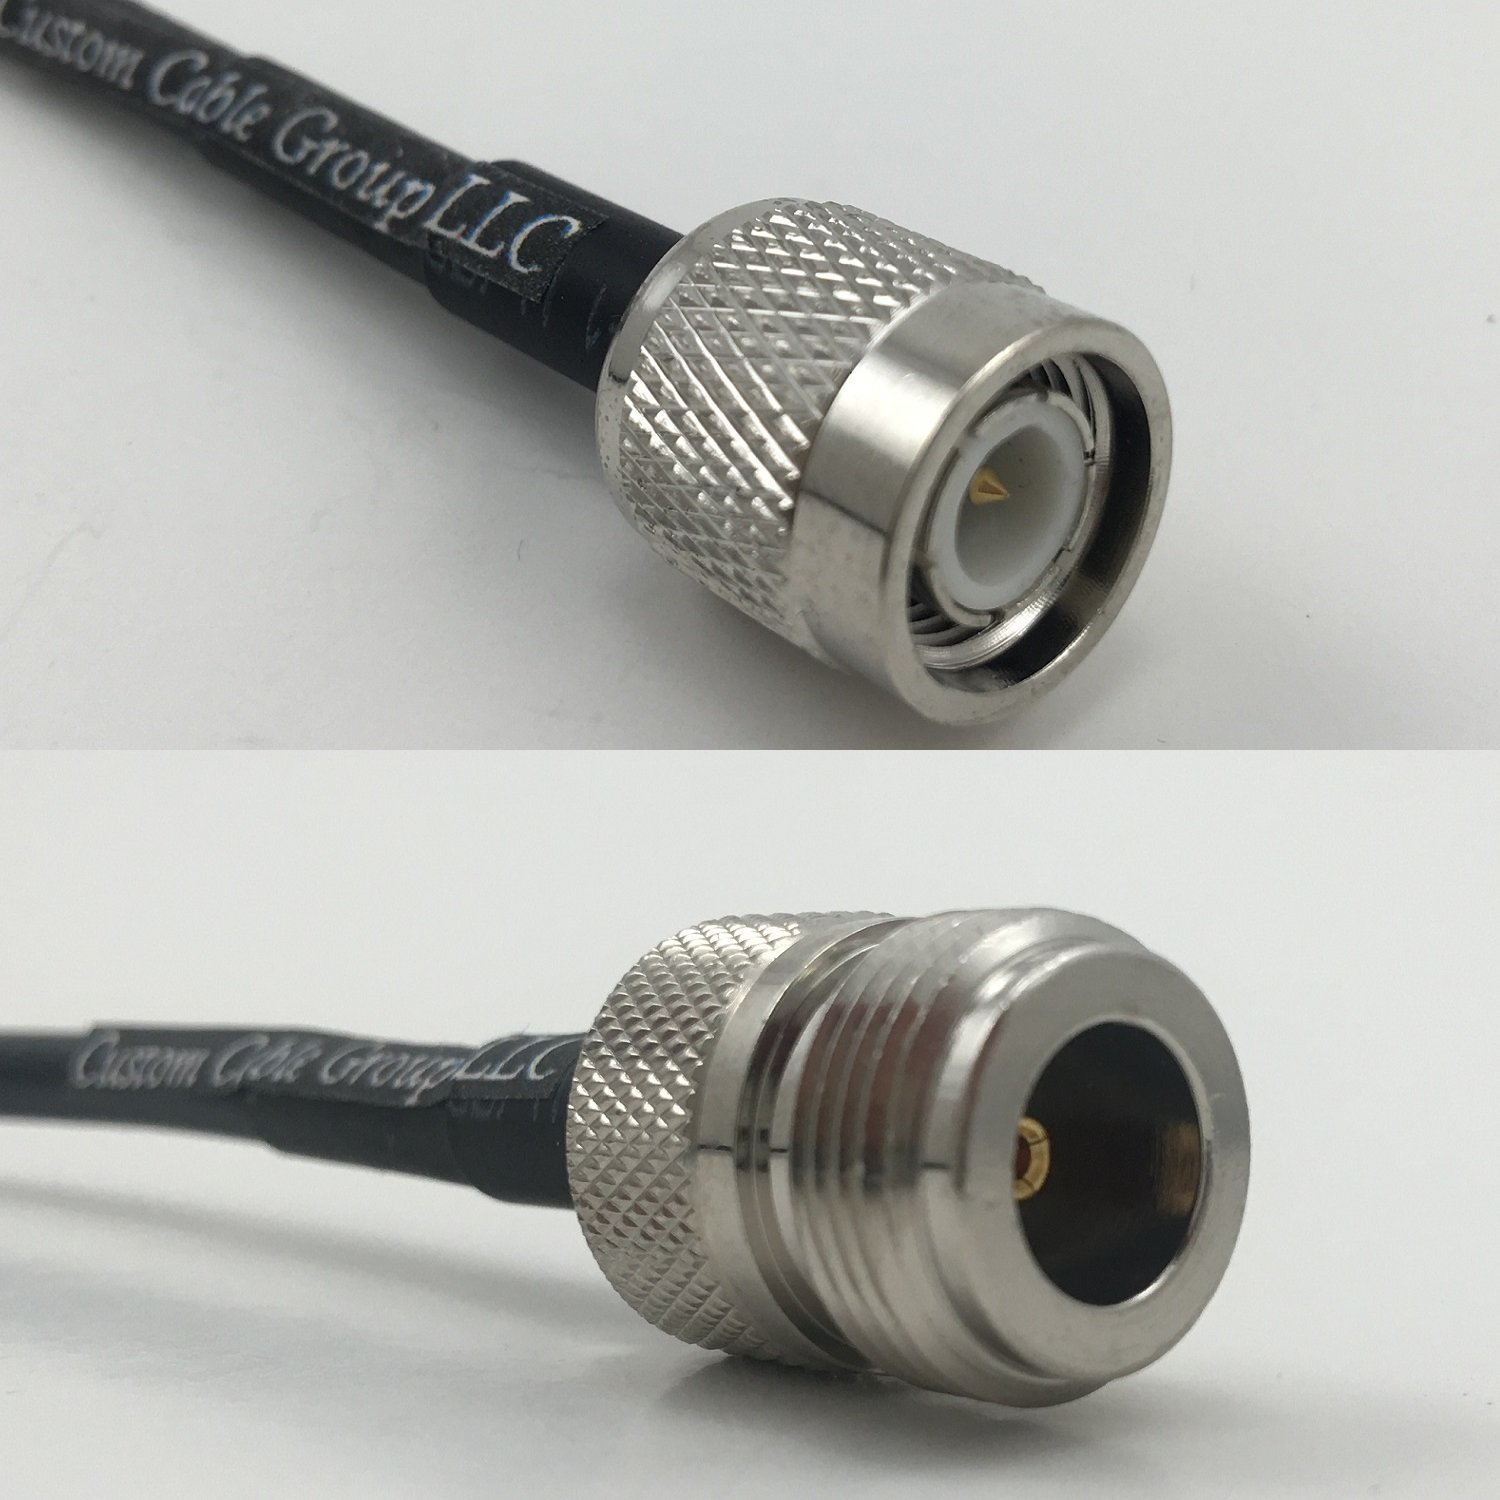 1 foot RG58 TNC MALE to N FEMALE Pigtail Jumper RF coaxial cable 50ohm High Quality Quick USA Shipping